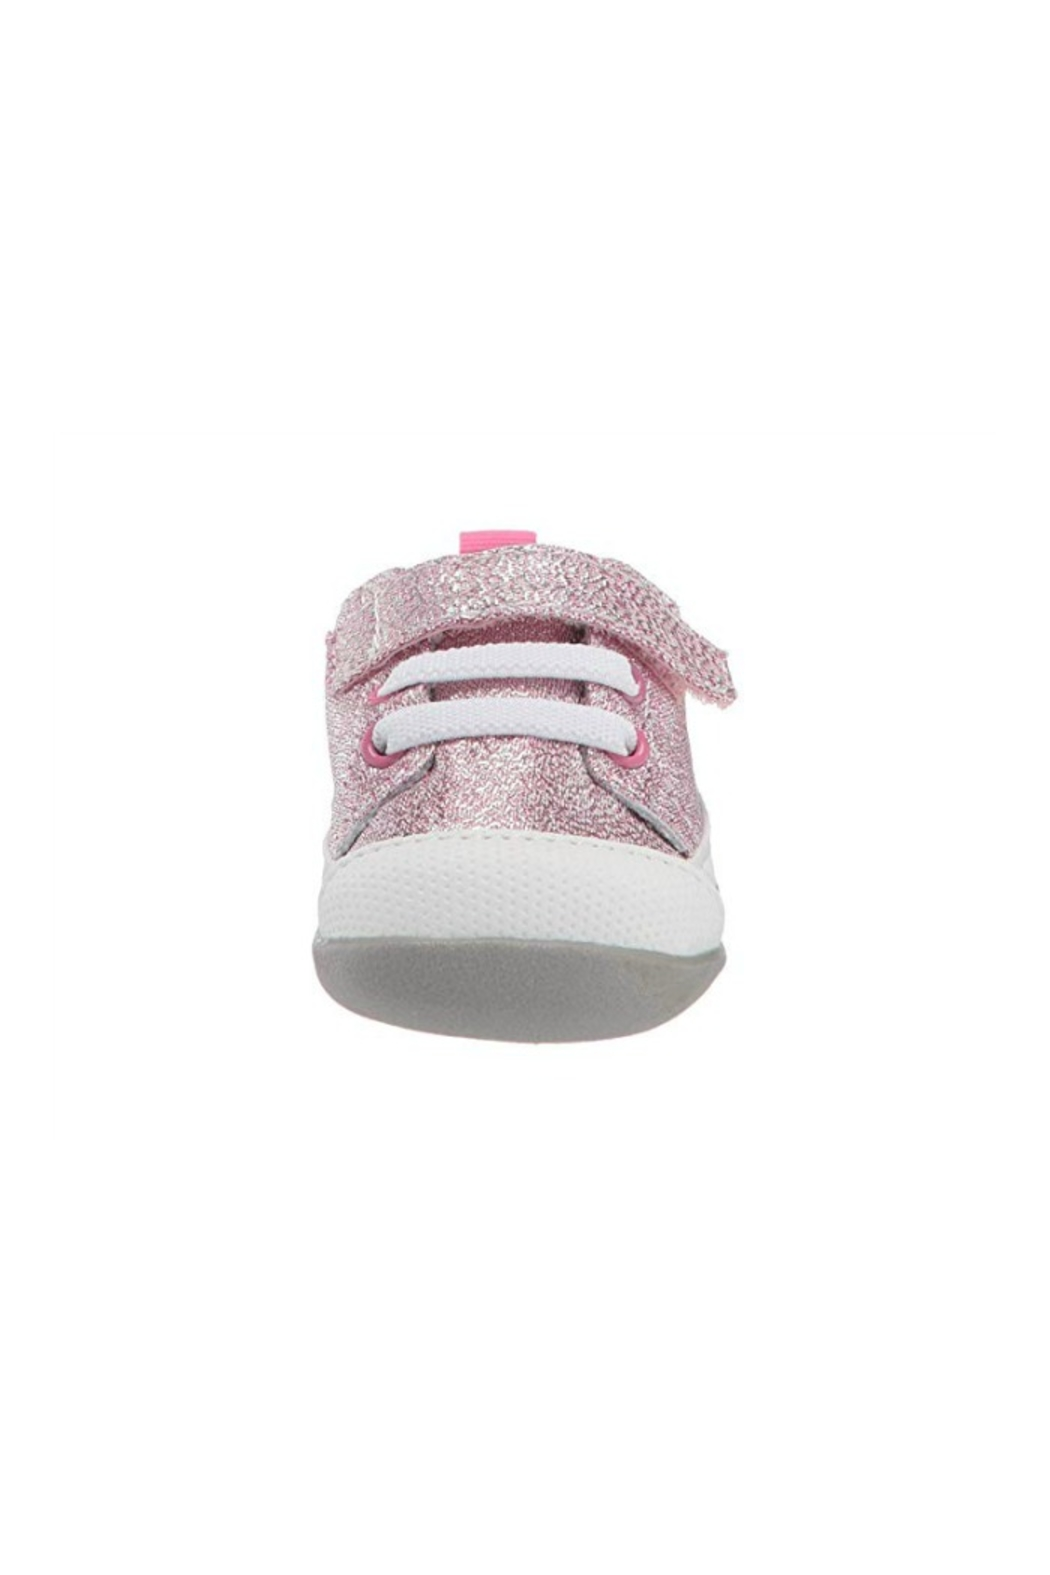 See Kai Run  Stevie II Infant in Pink Glitter - Front Full Image